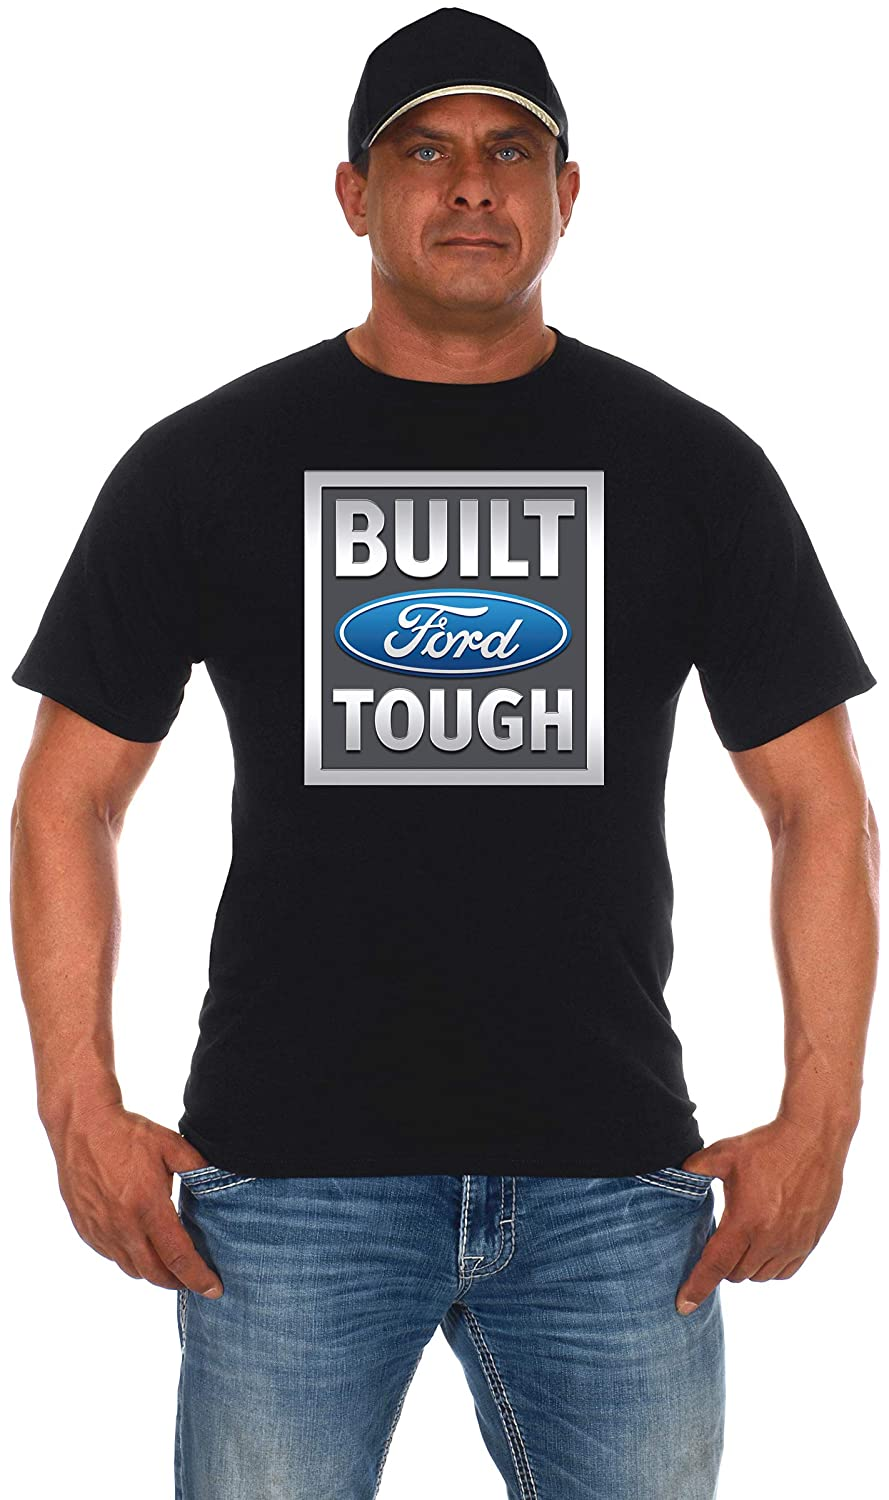 JH DESIGN GROUP Mens Ford Truck T-Shirts in Two Styles Black /& Charcoal